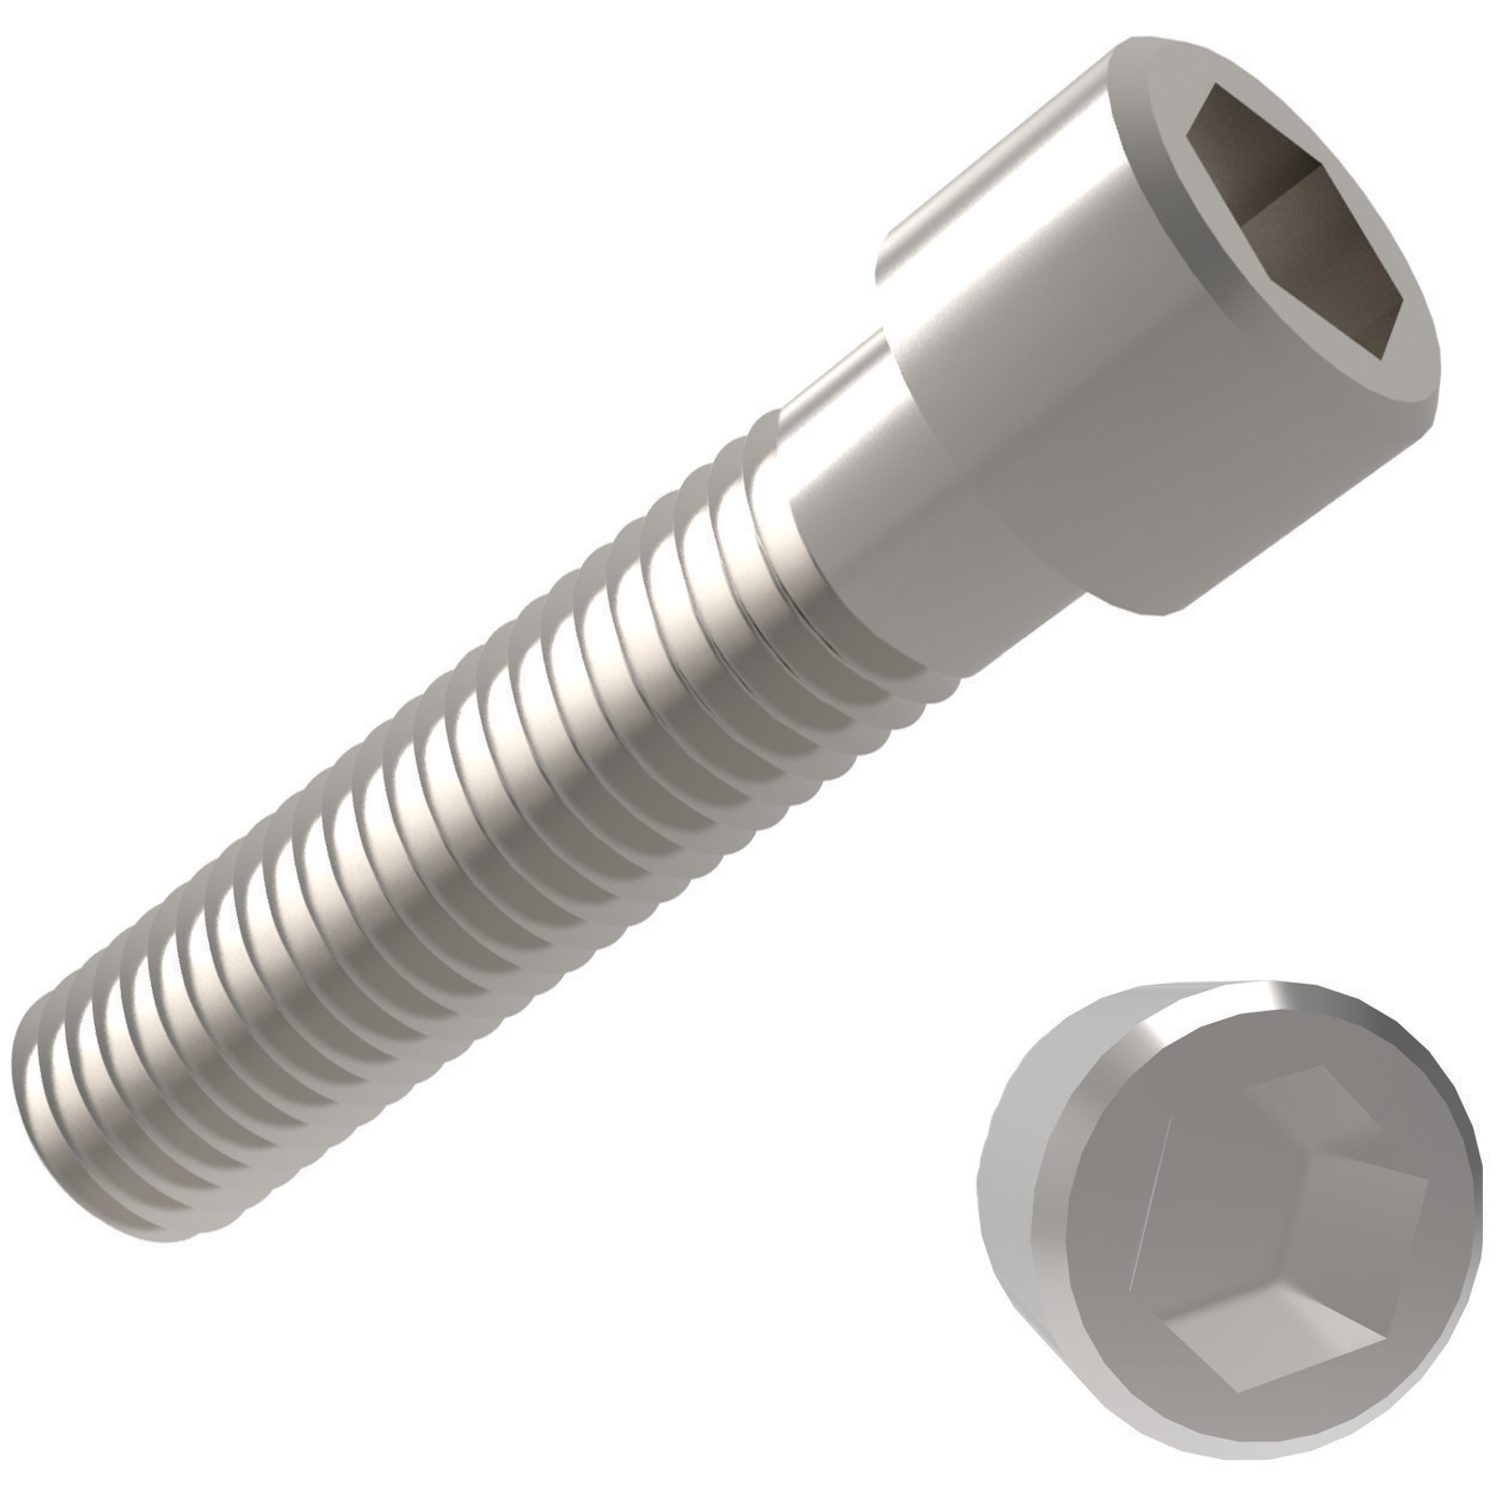 P0201.A4 - Socket Cap Screws